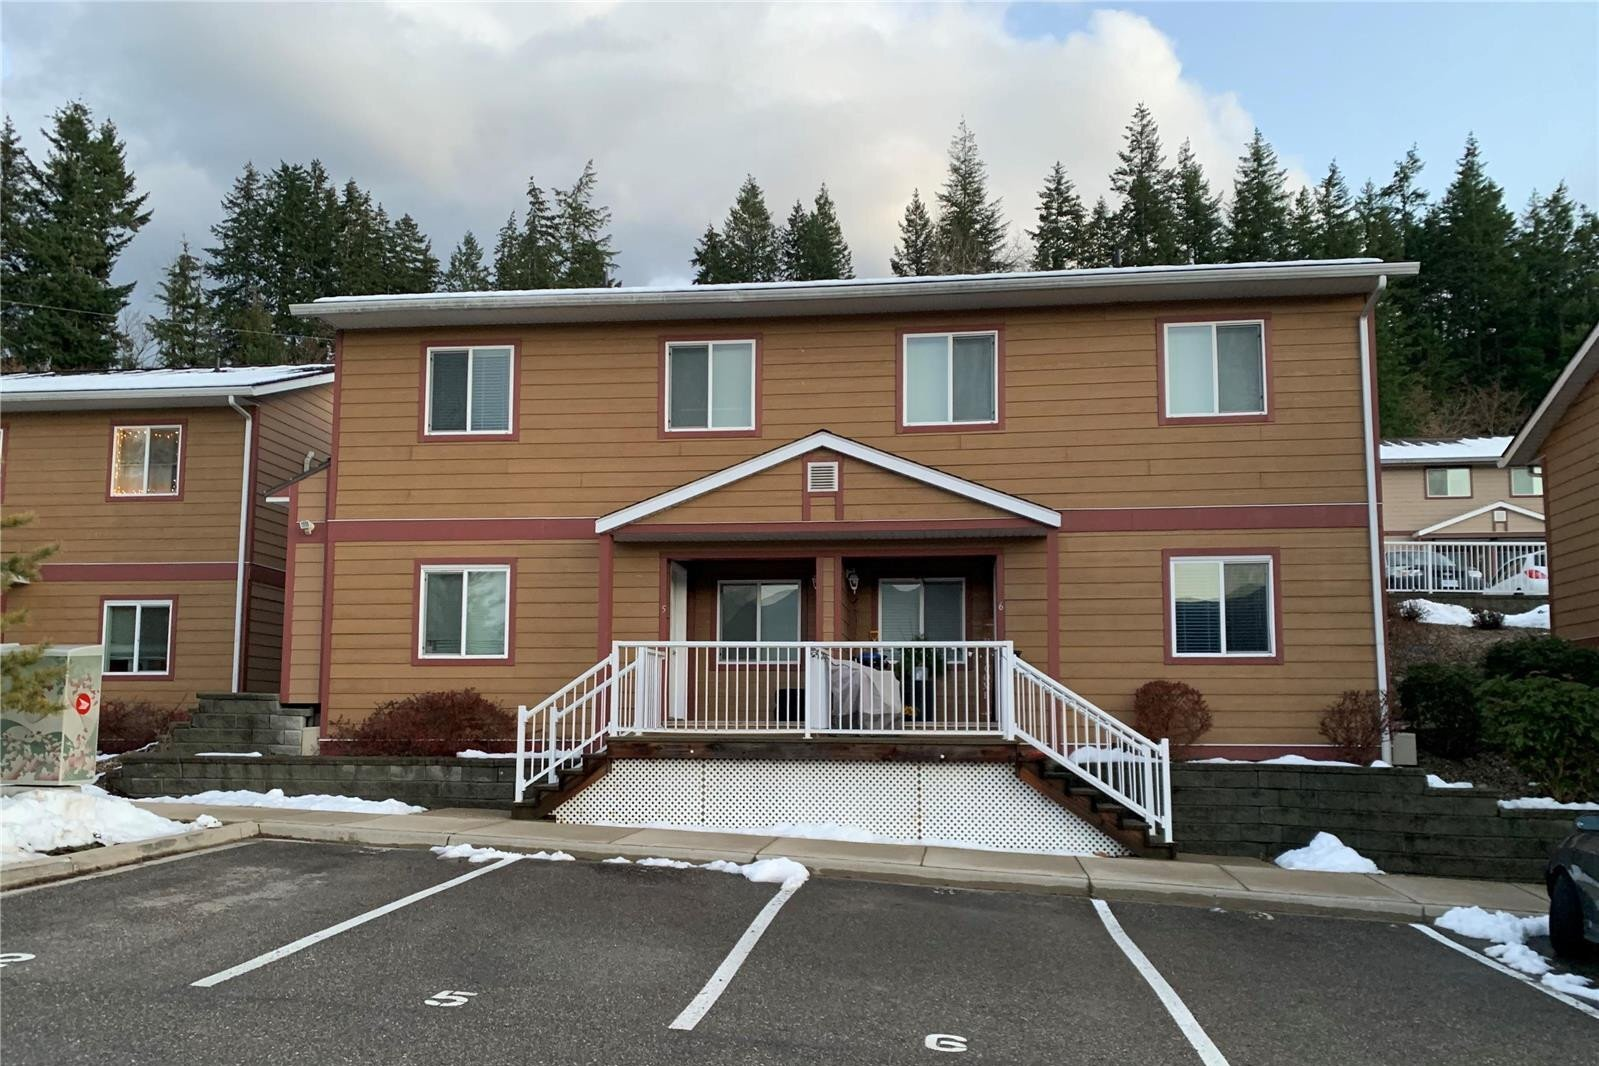 Townhouse for sale at 1070 1 St Southeast Unit 5-8 Salmon Arm British Columbia - MLS: 10220148